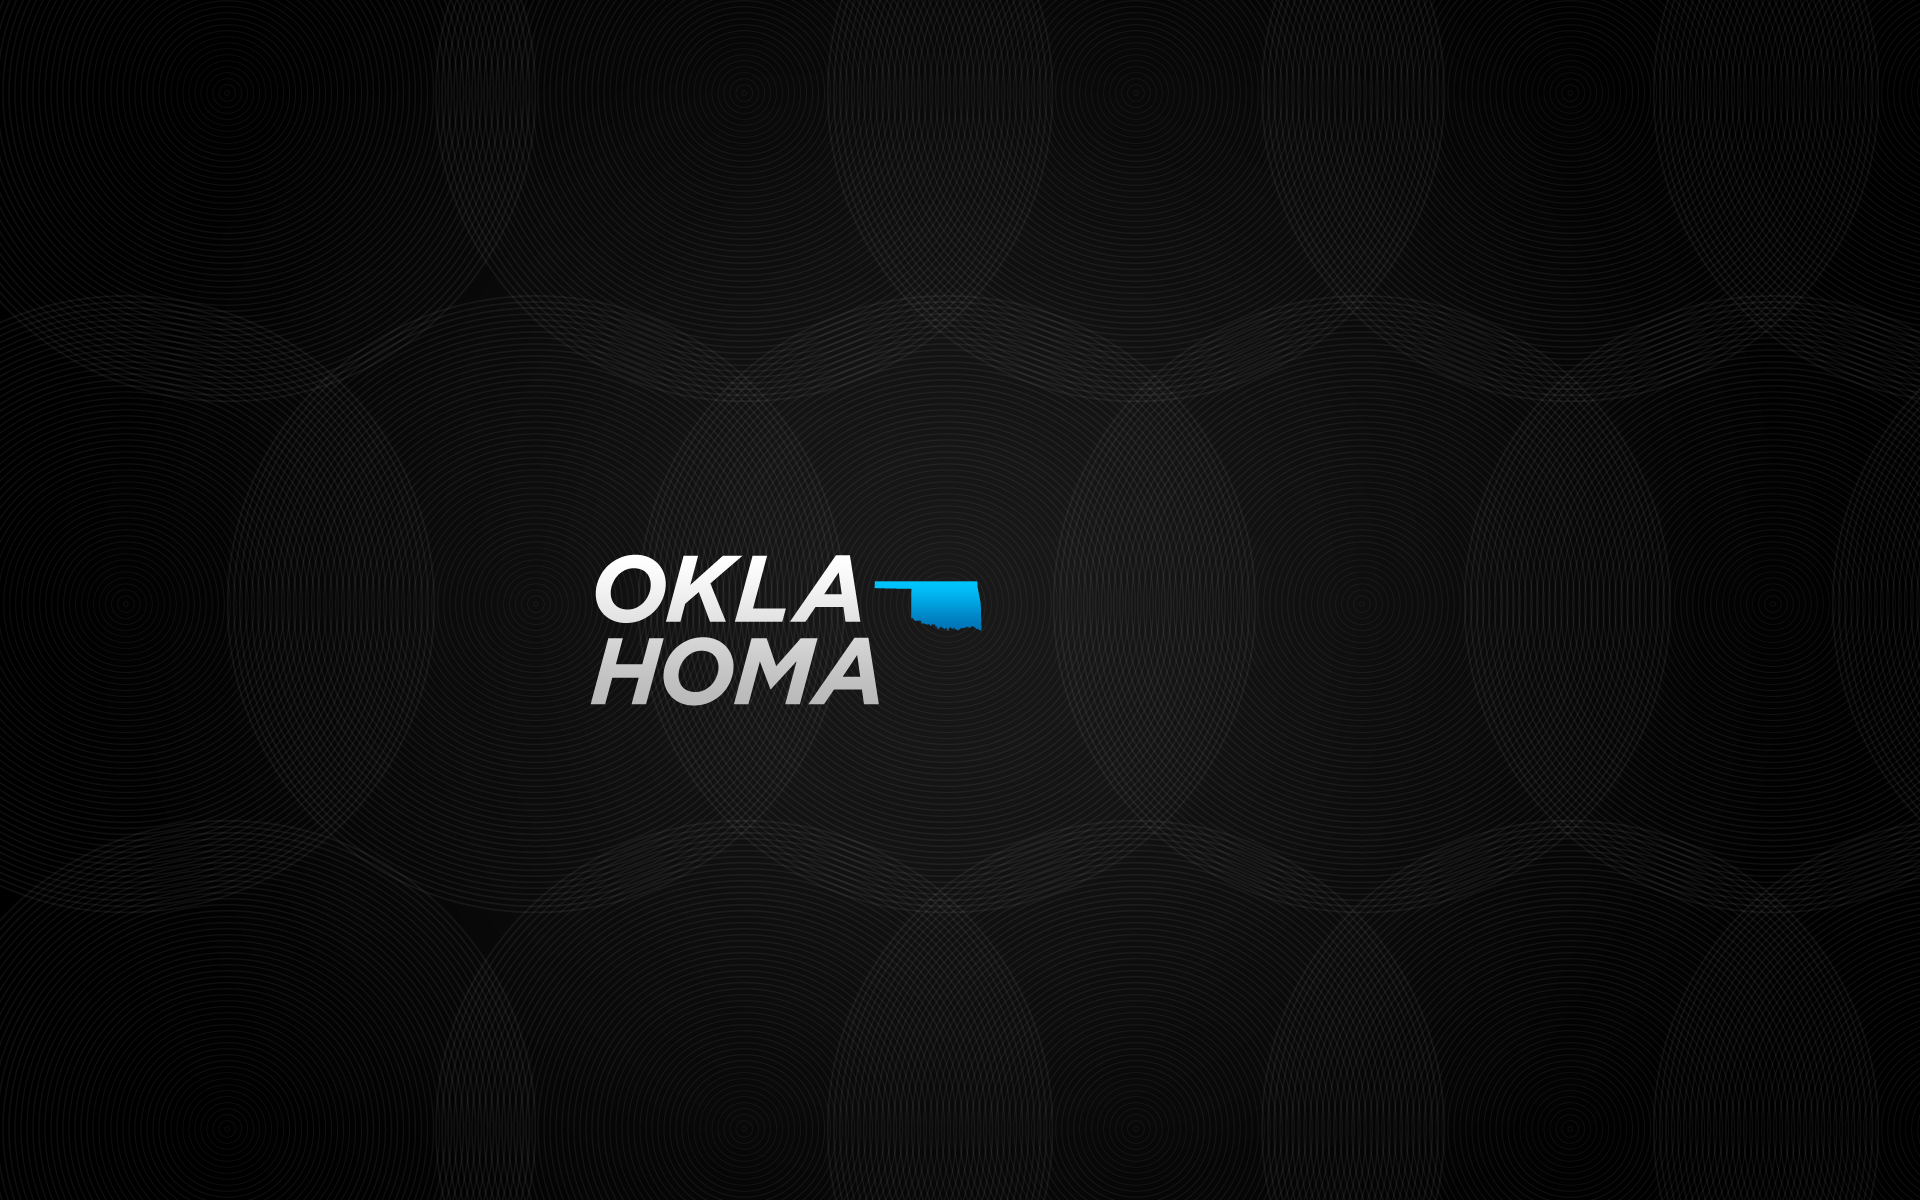 Full HDQ Cover Backgrounds: Oklahoma, 1920x1200 px